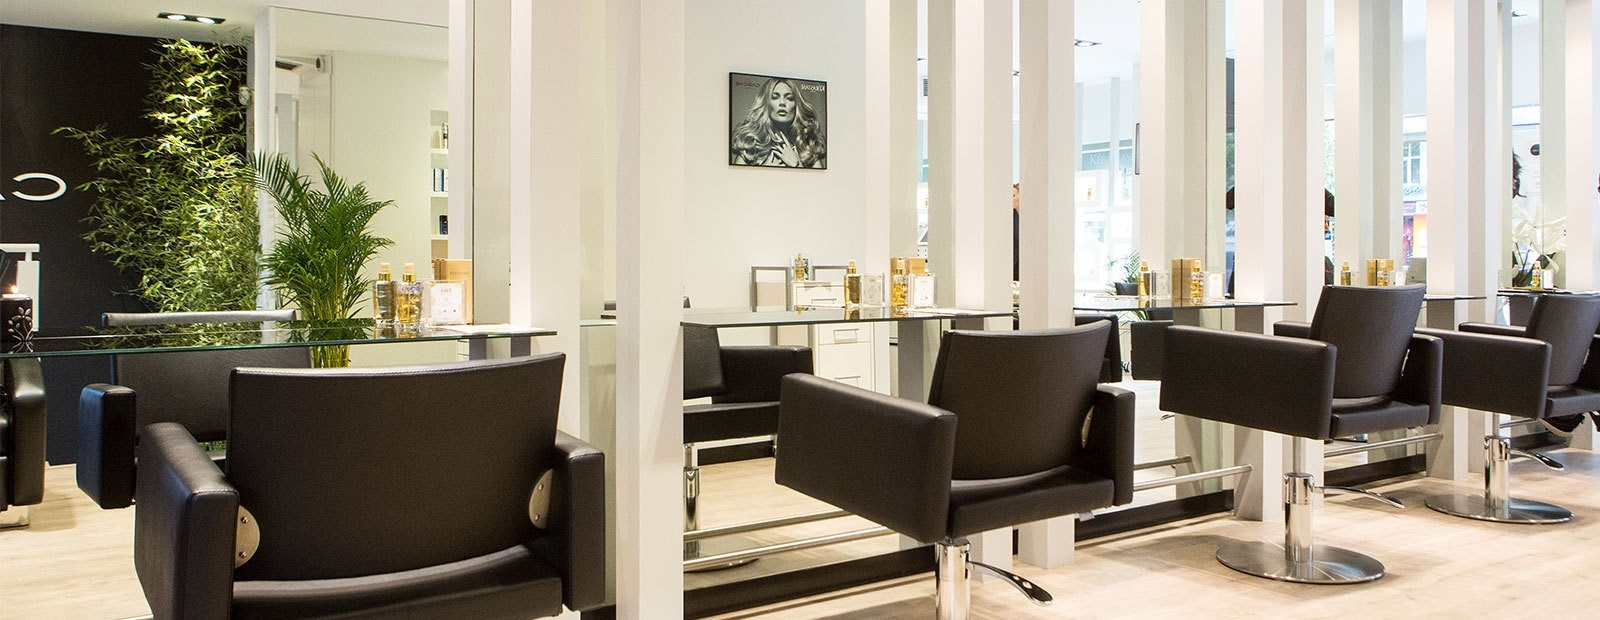 Prestigious Surfers Paradise Hair & Beauty Salon